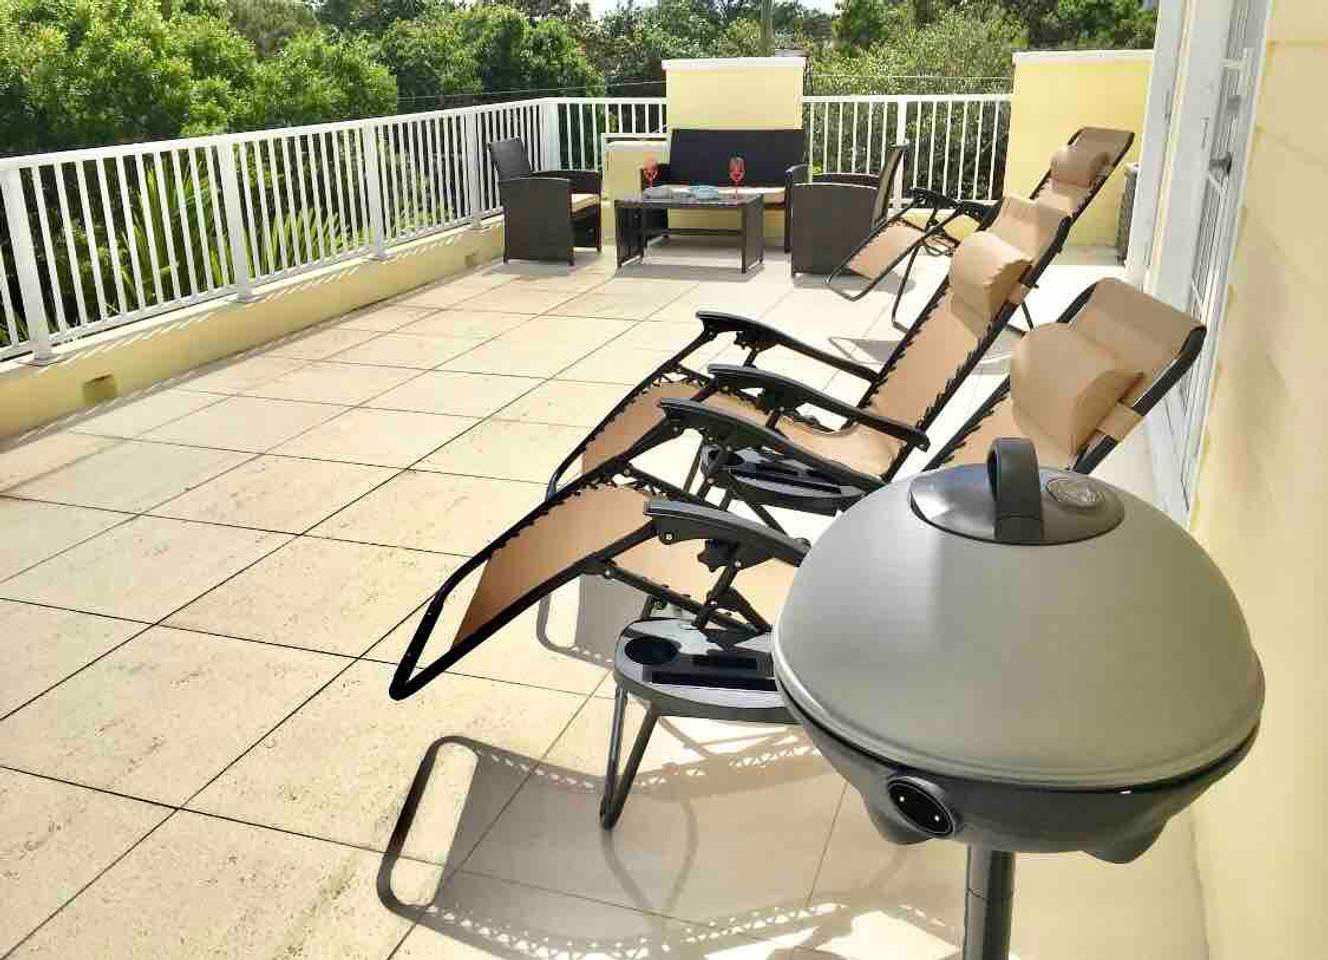 4 Bedroom House Close to Everything In FLL #906 photo 4755154